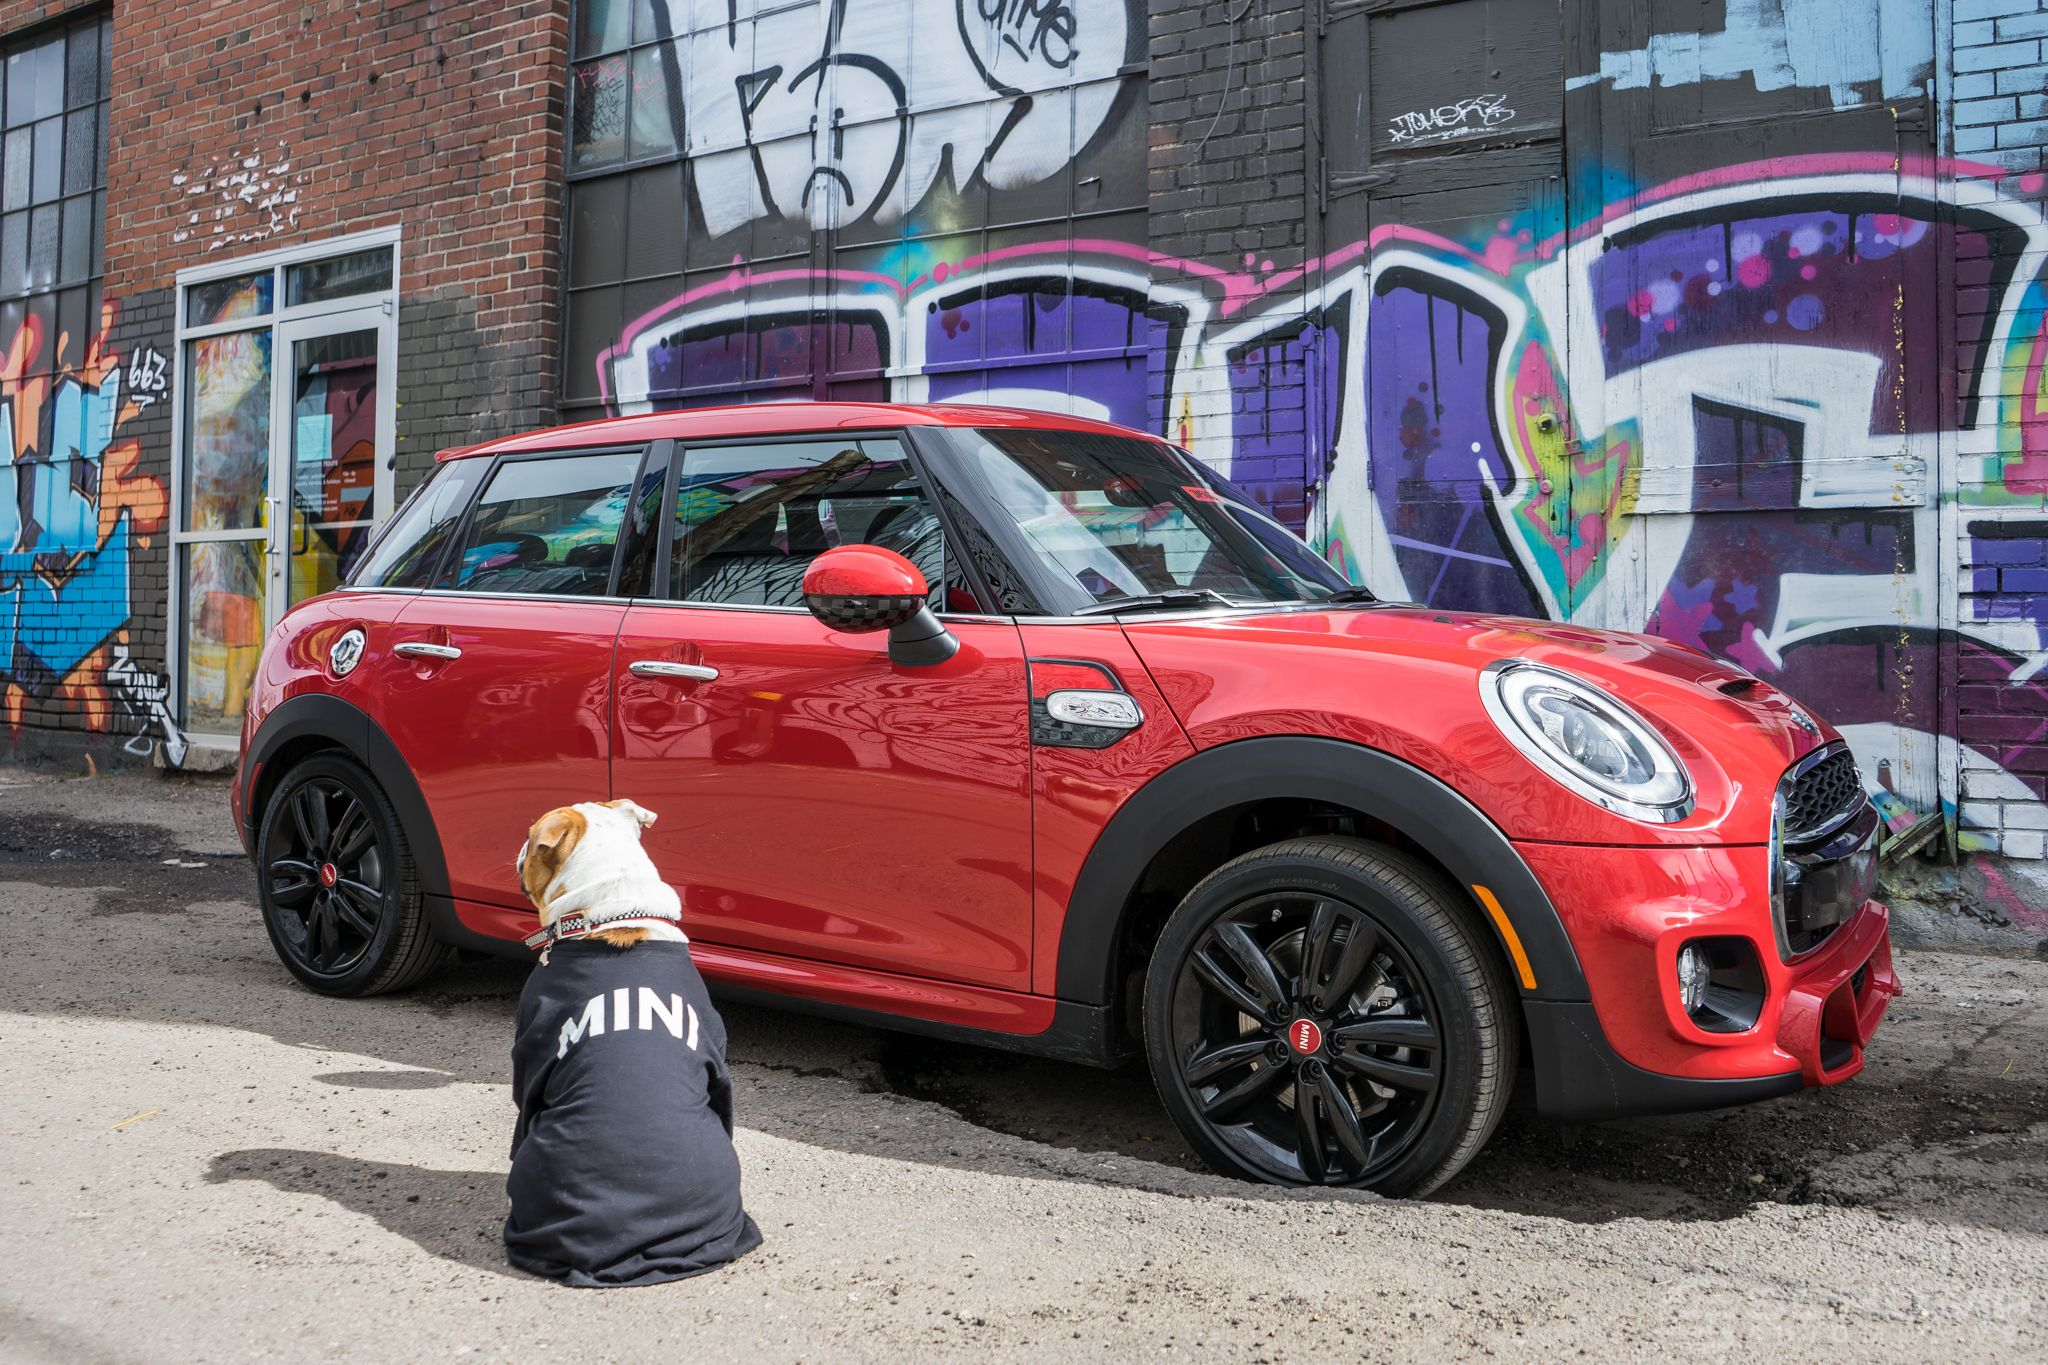 Schomp mini offers models including cooper and countryman along with a variety of pre owned vehicles